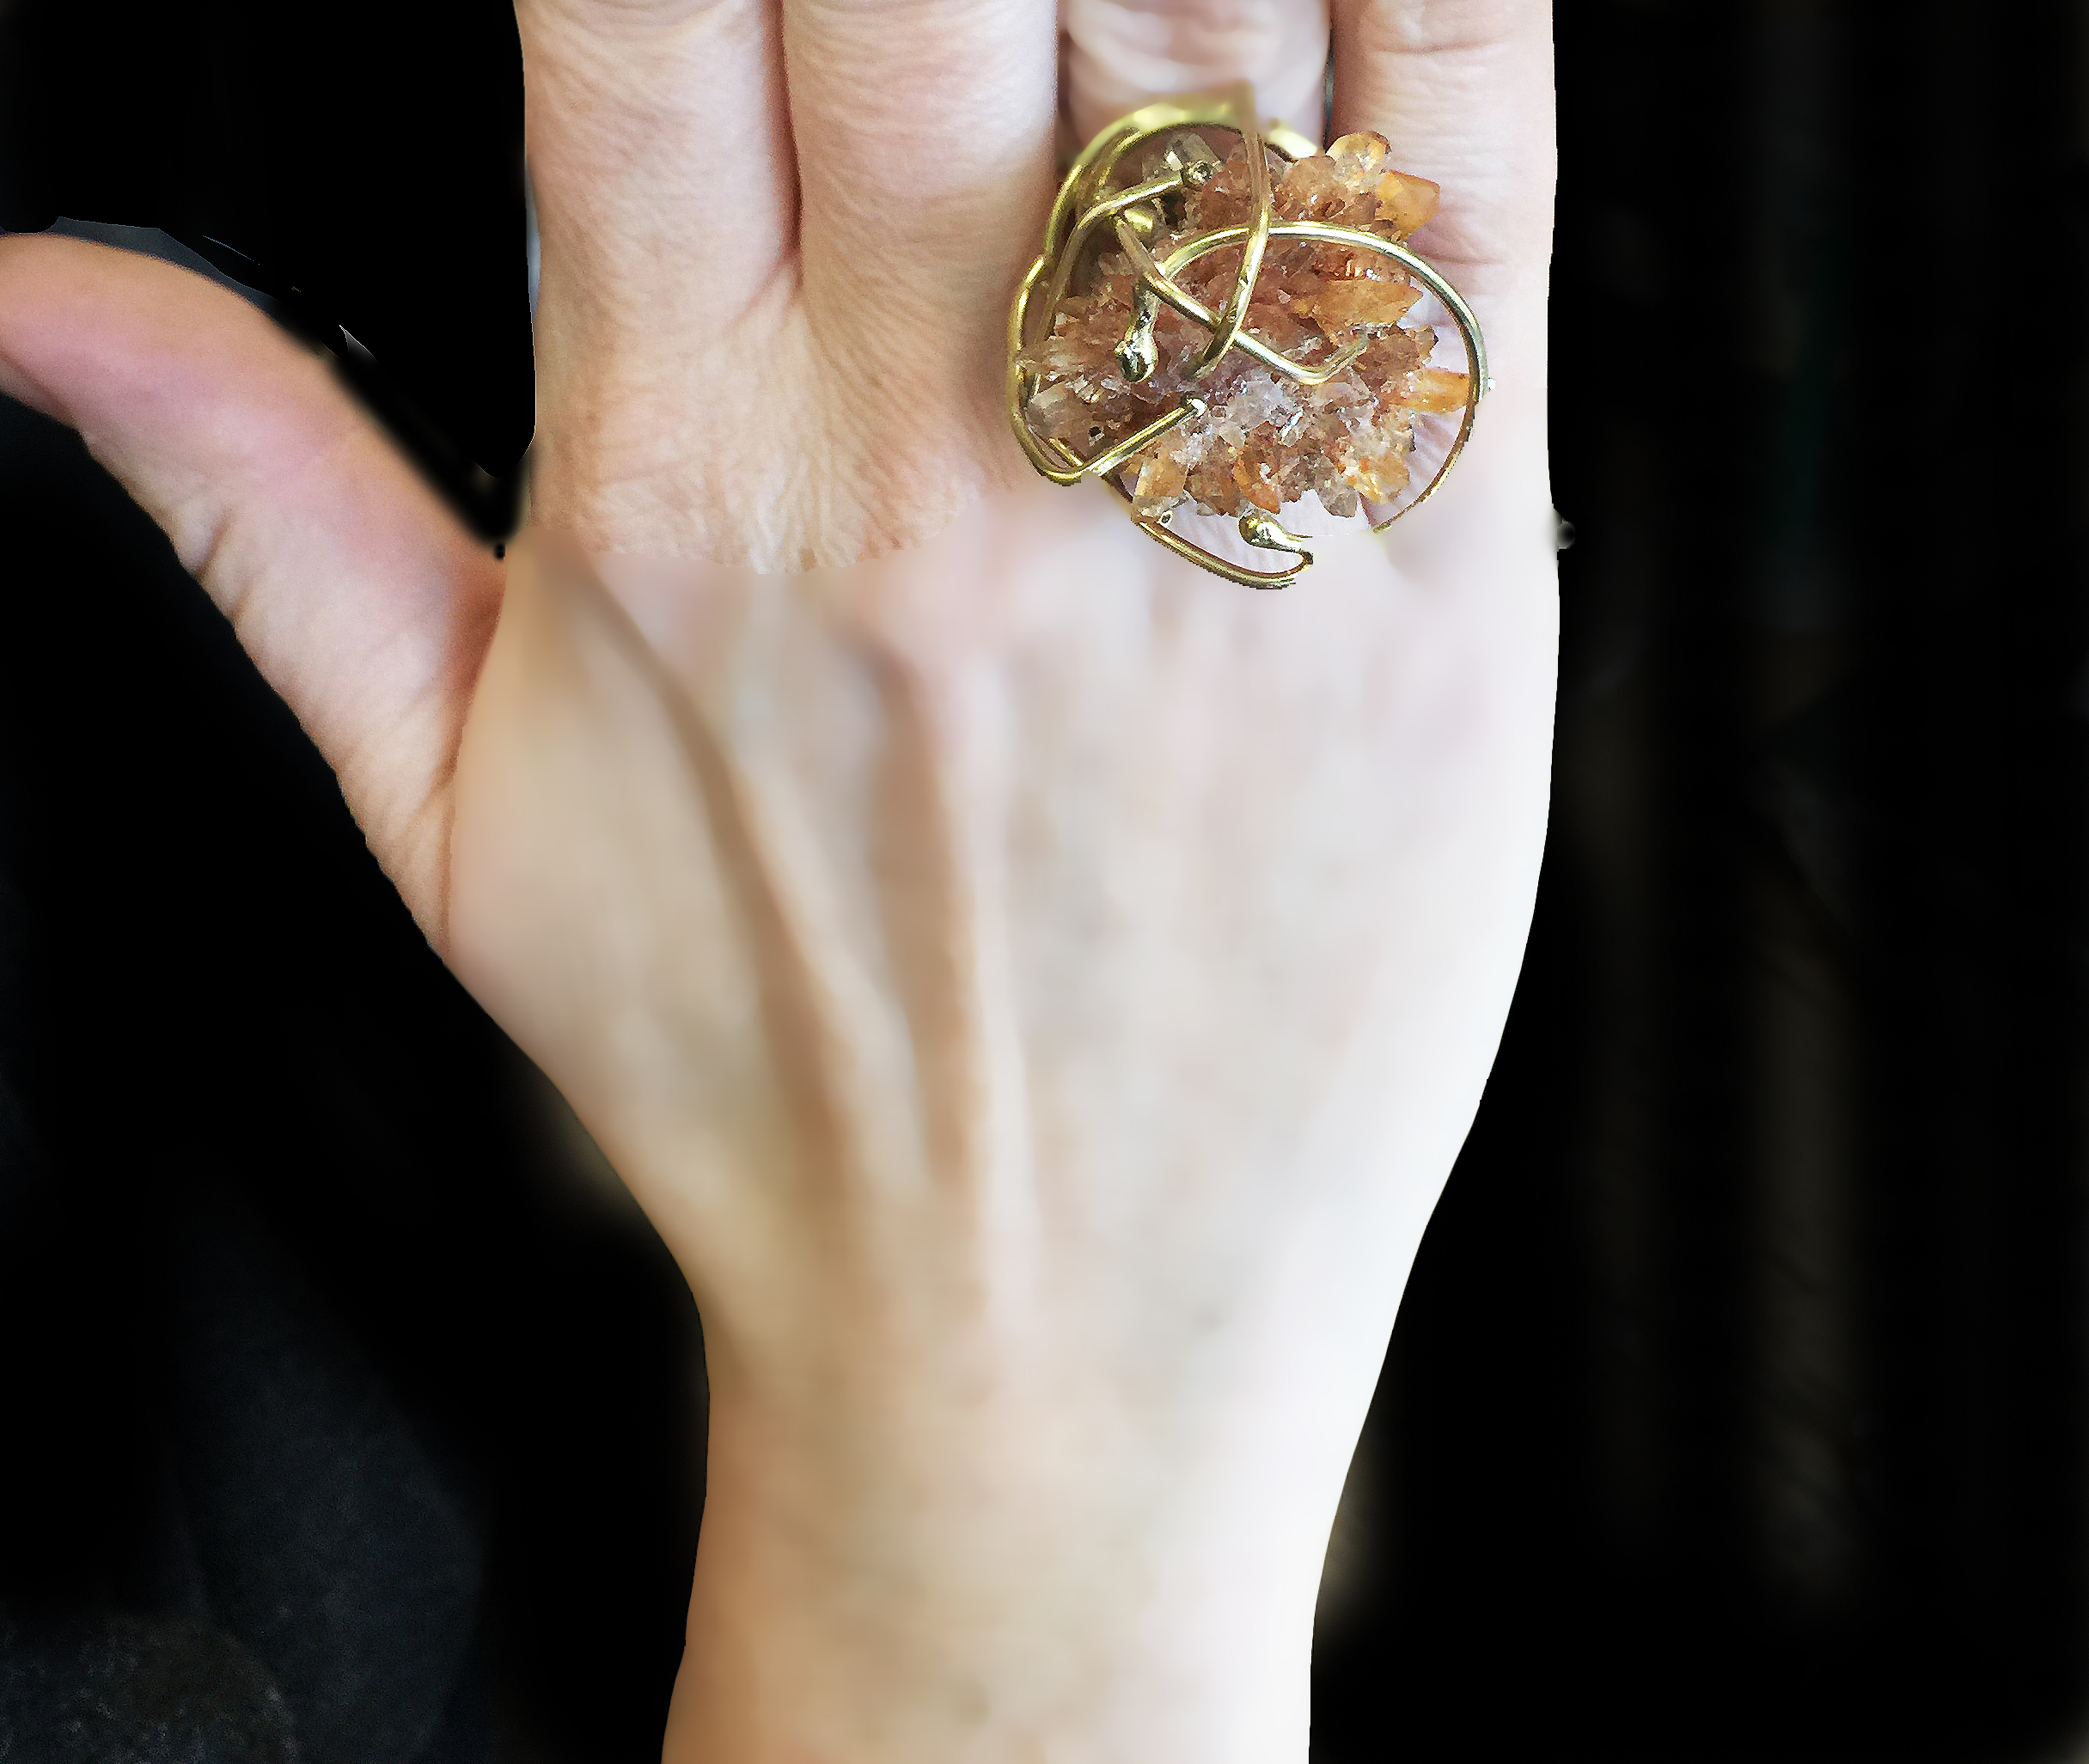 Jewelry as Weapon Series ring#2